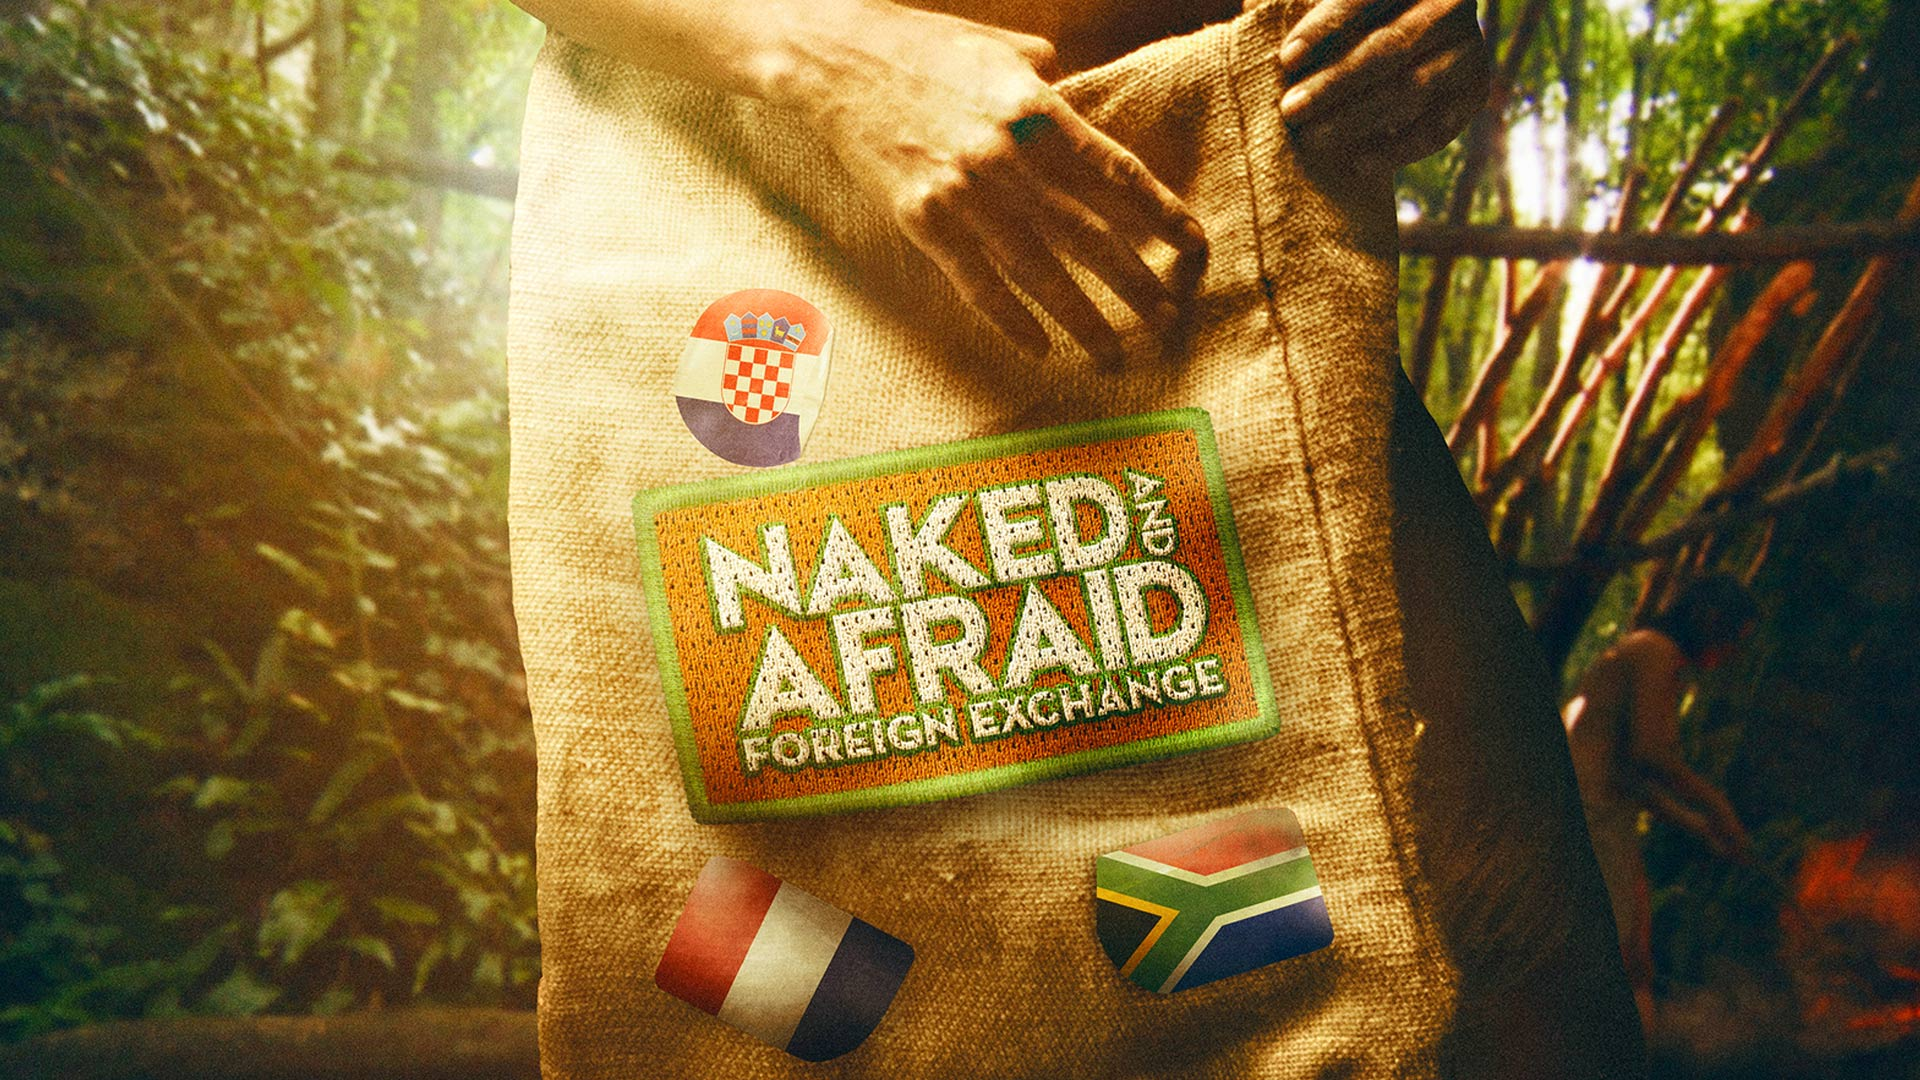 Naked and Afraid: Foreign Exchange - Season 1